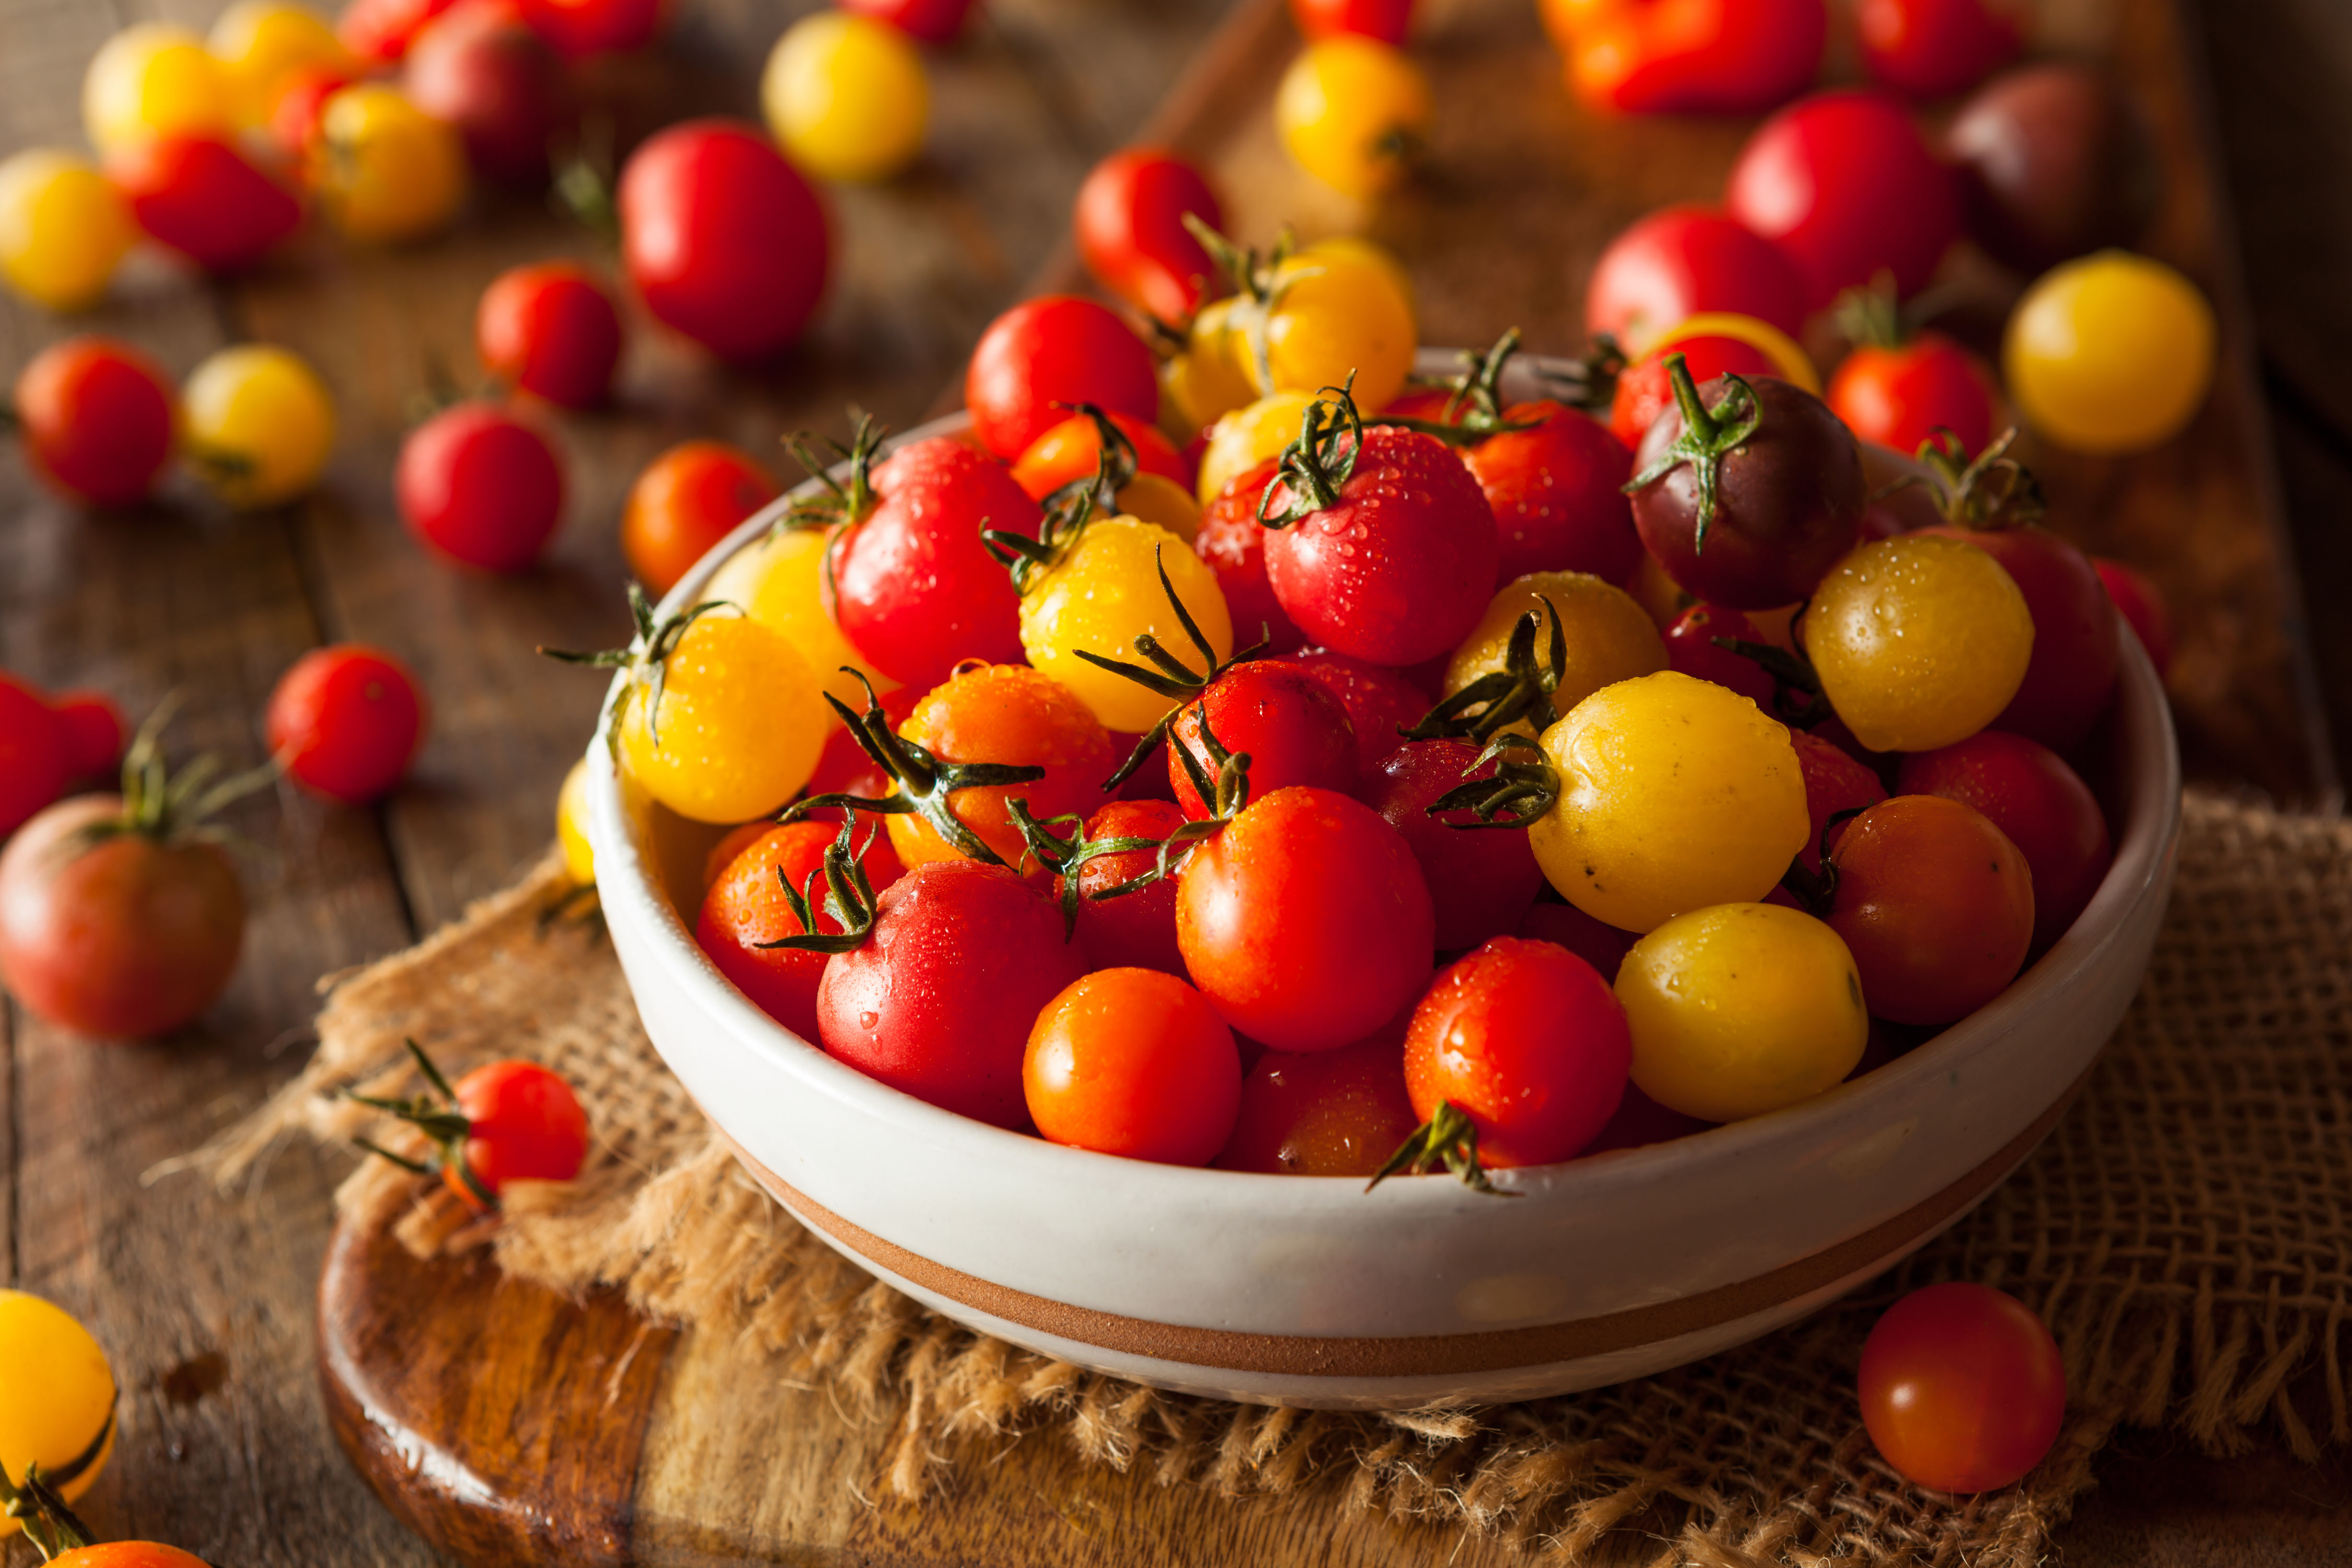 Grape Tomatoes Vs. Cherry Tomatoes: Which Are Better?